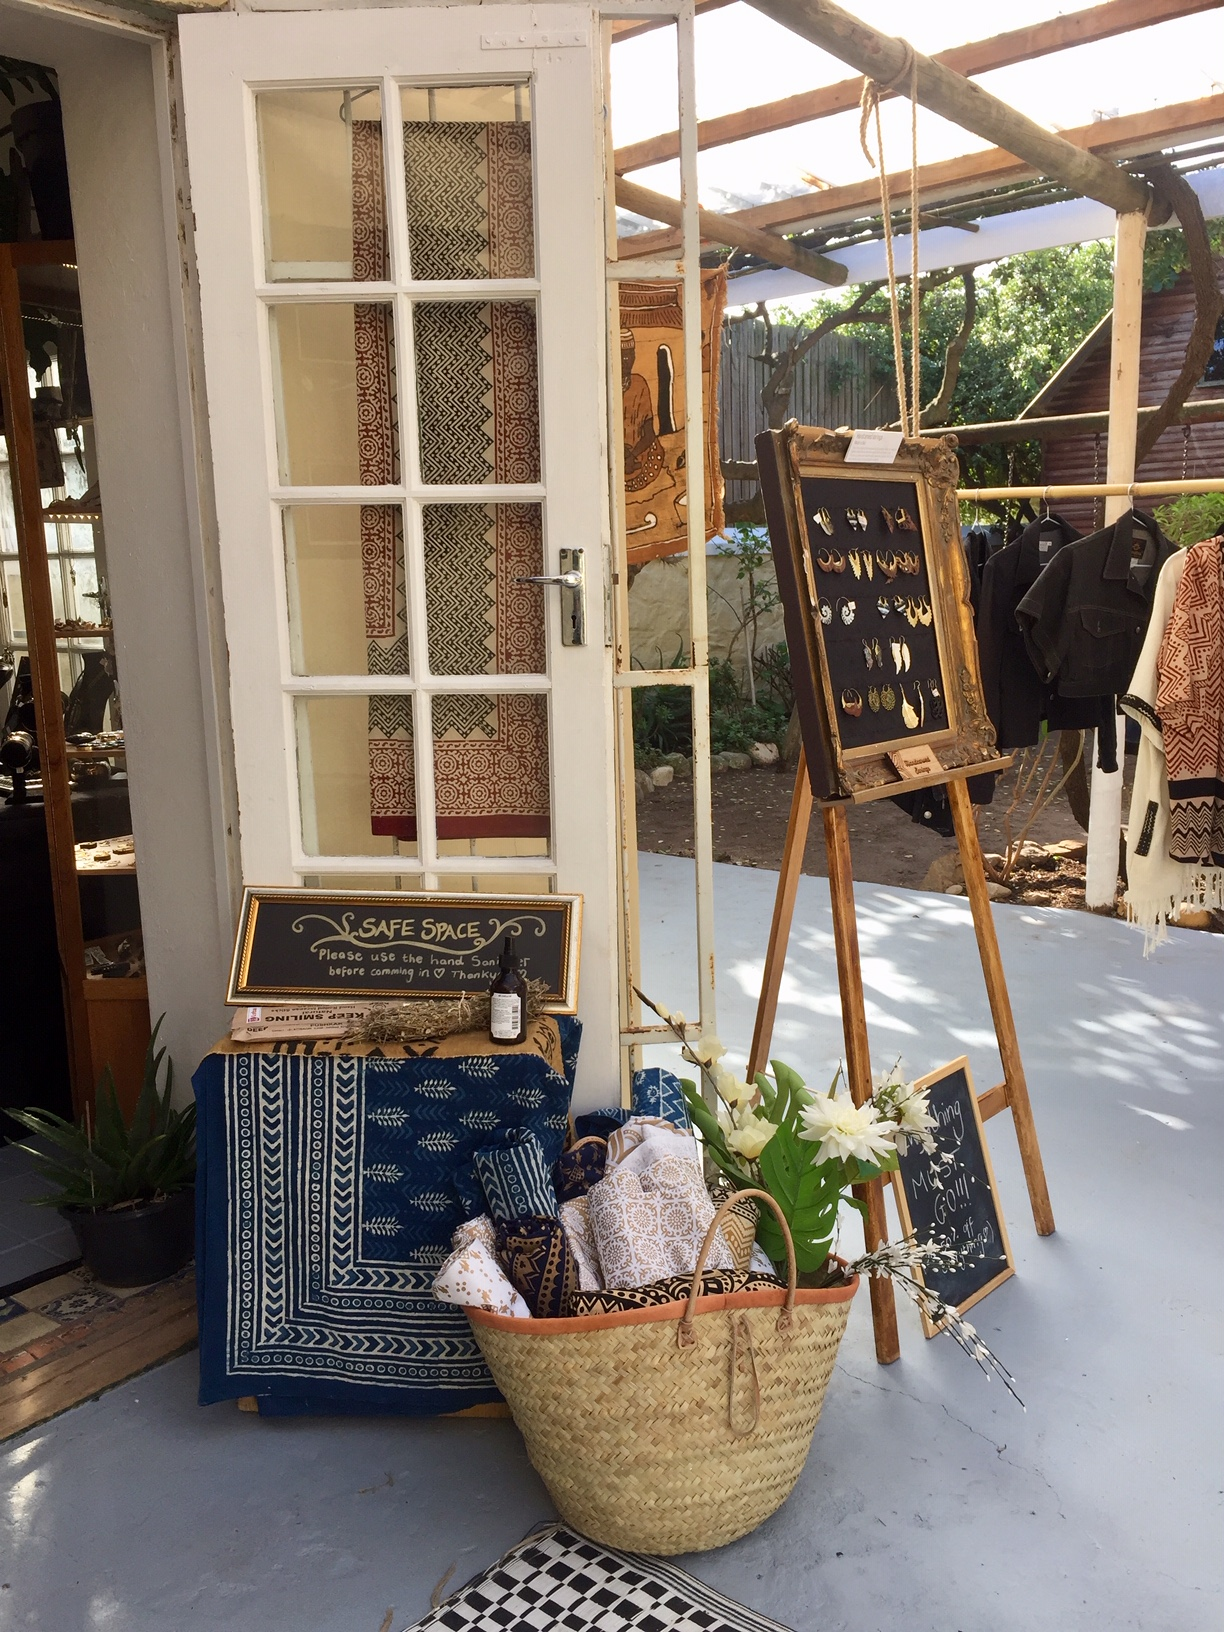 Imhoff Farm Pop Up Shop